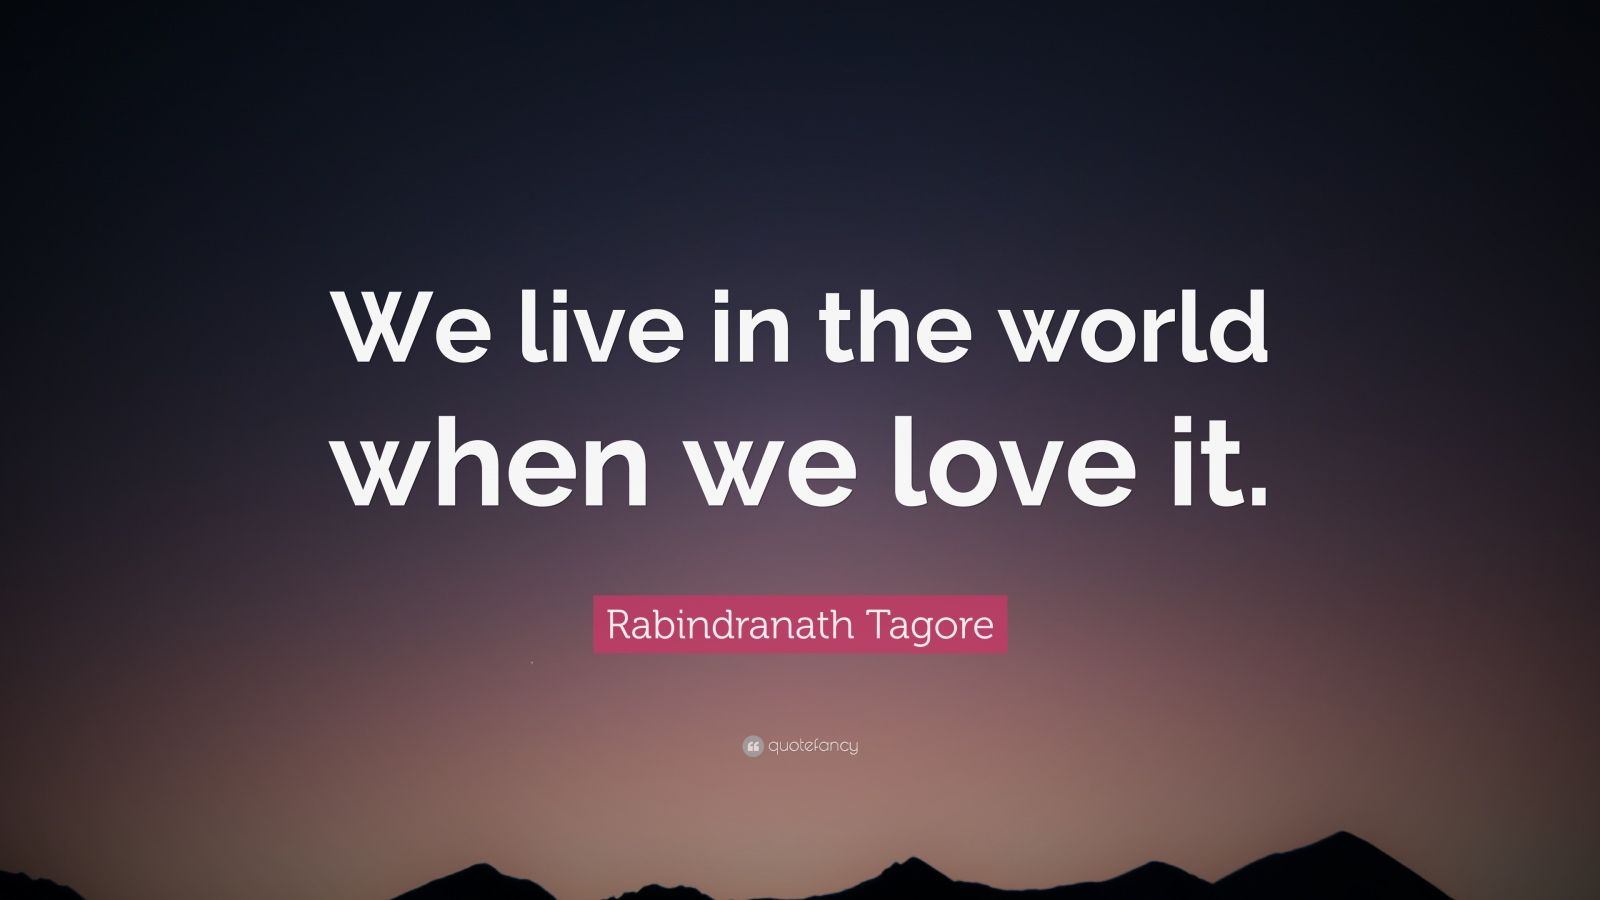 rabindranath tagore quote we live in the world when we